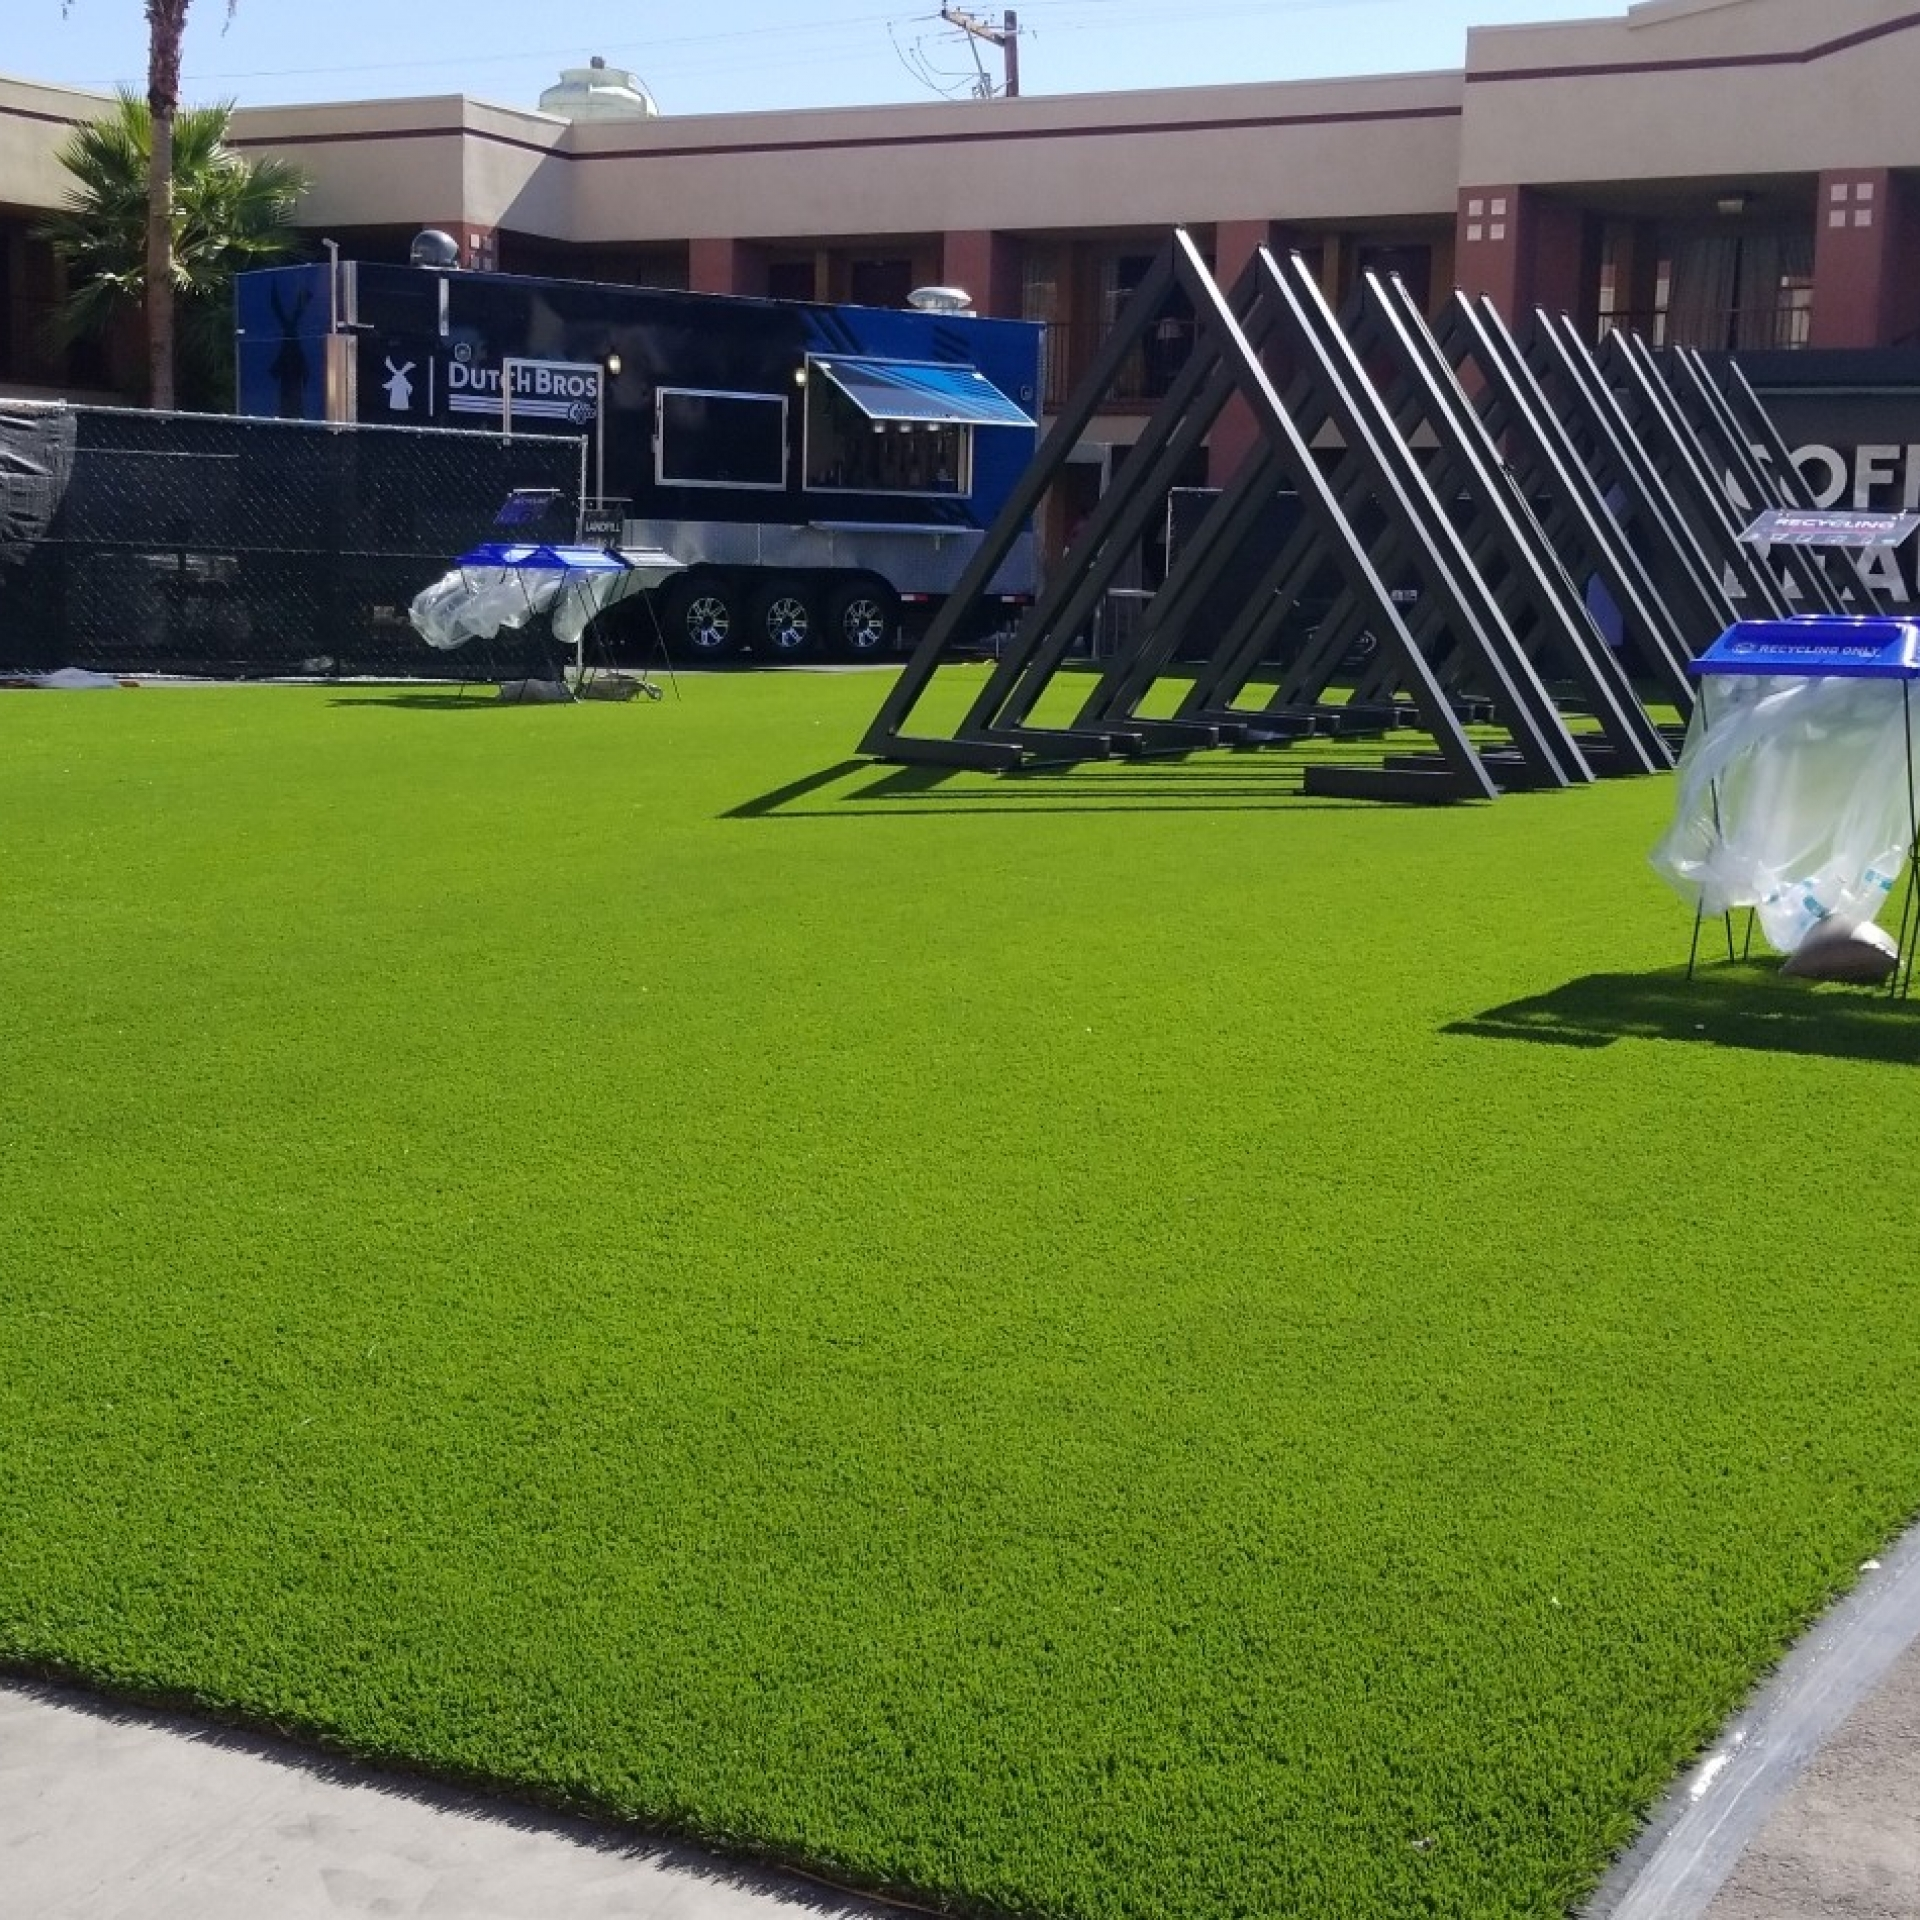 Cool Blue Hollow Olive artificial turf,synthetic turf,artificial turf installation,how to install artificial turf,used artificial turf,artificial grass installation,artificial turf installation,turf installation,synthetic grass installation,fake grass installation